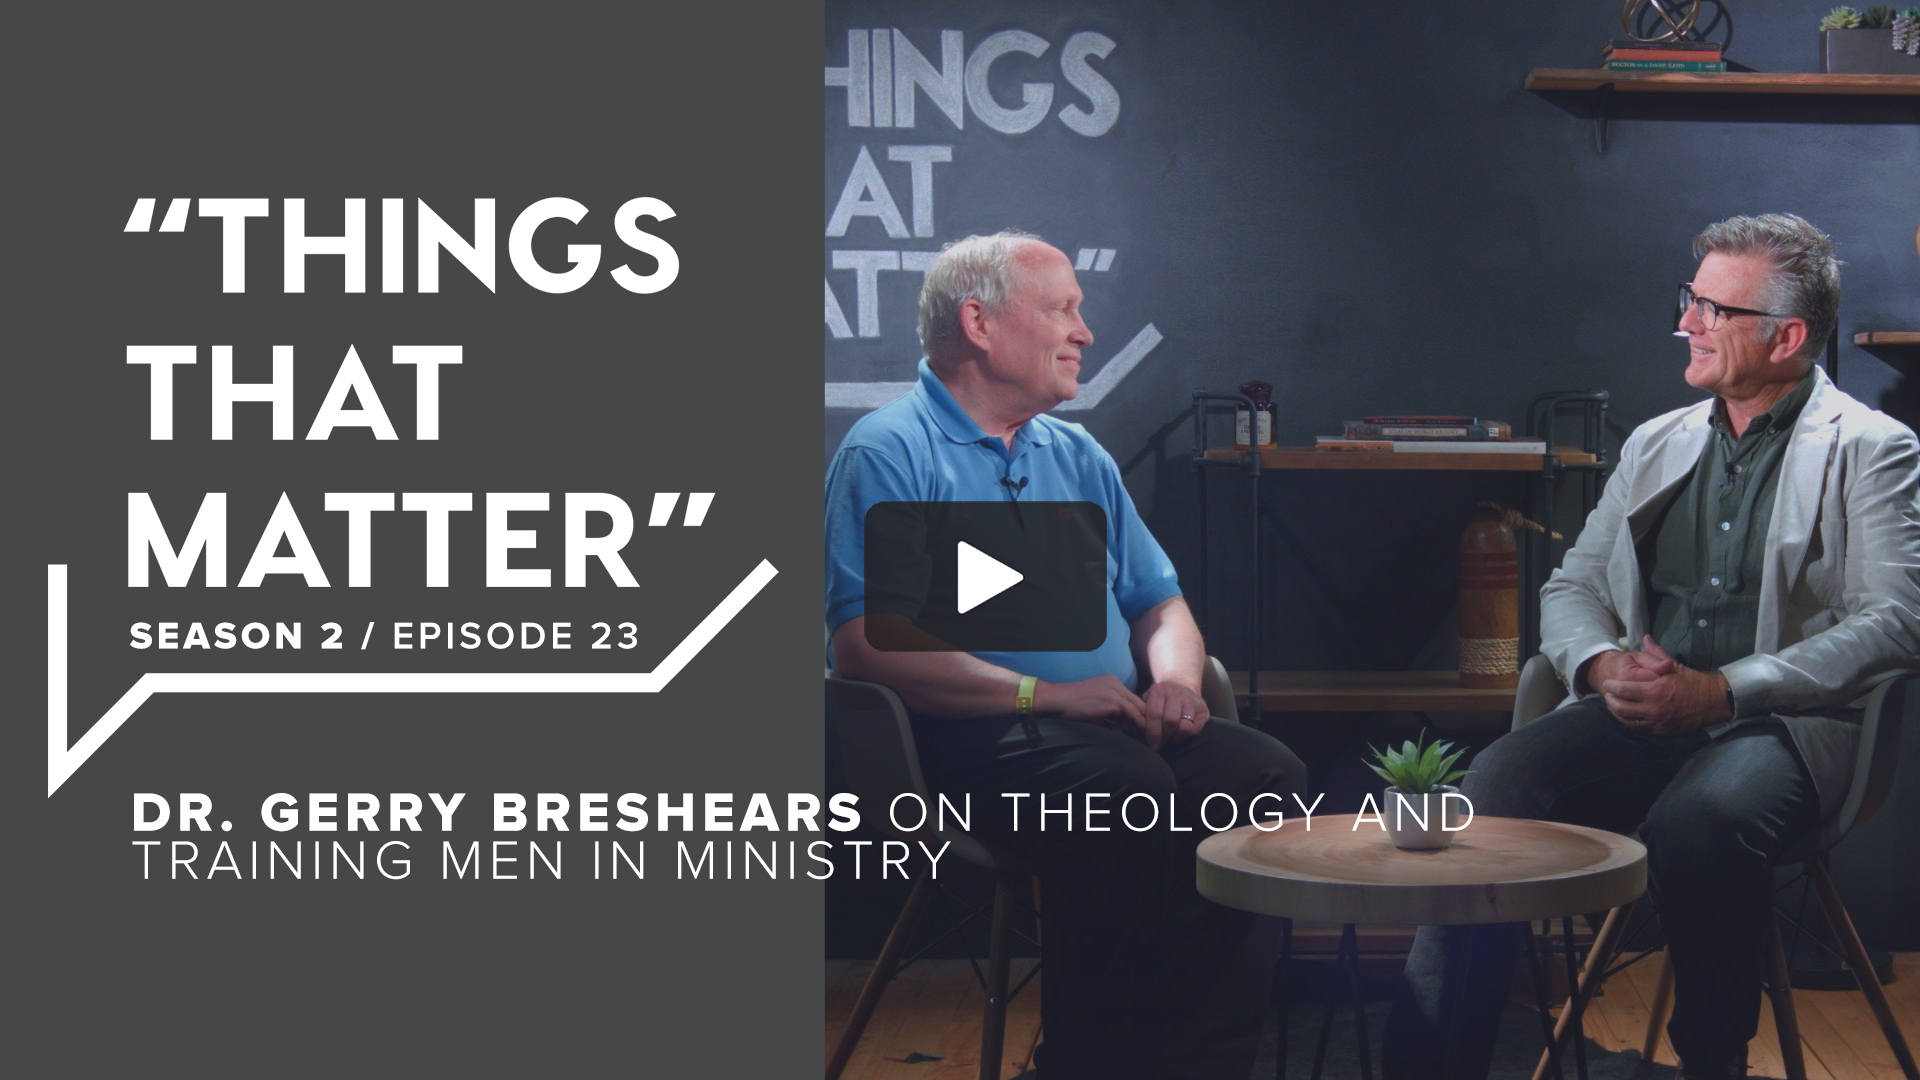 TTM S2 E23 - Dr. Gerry Breshears on Theology and Training Men in Ministry